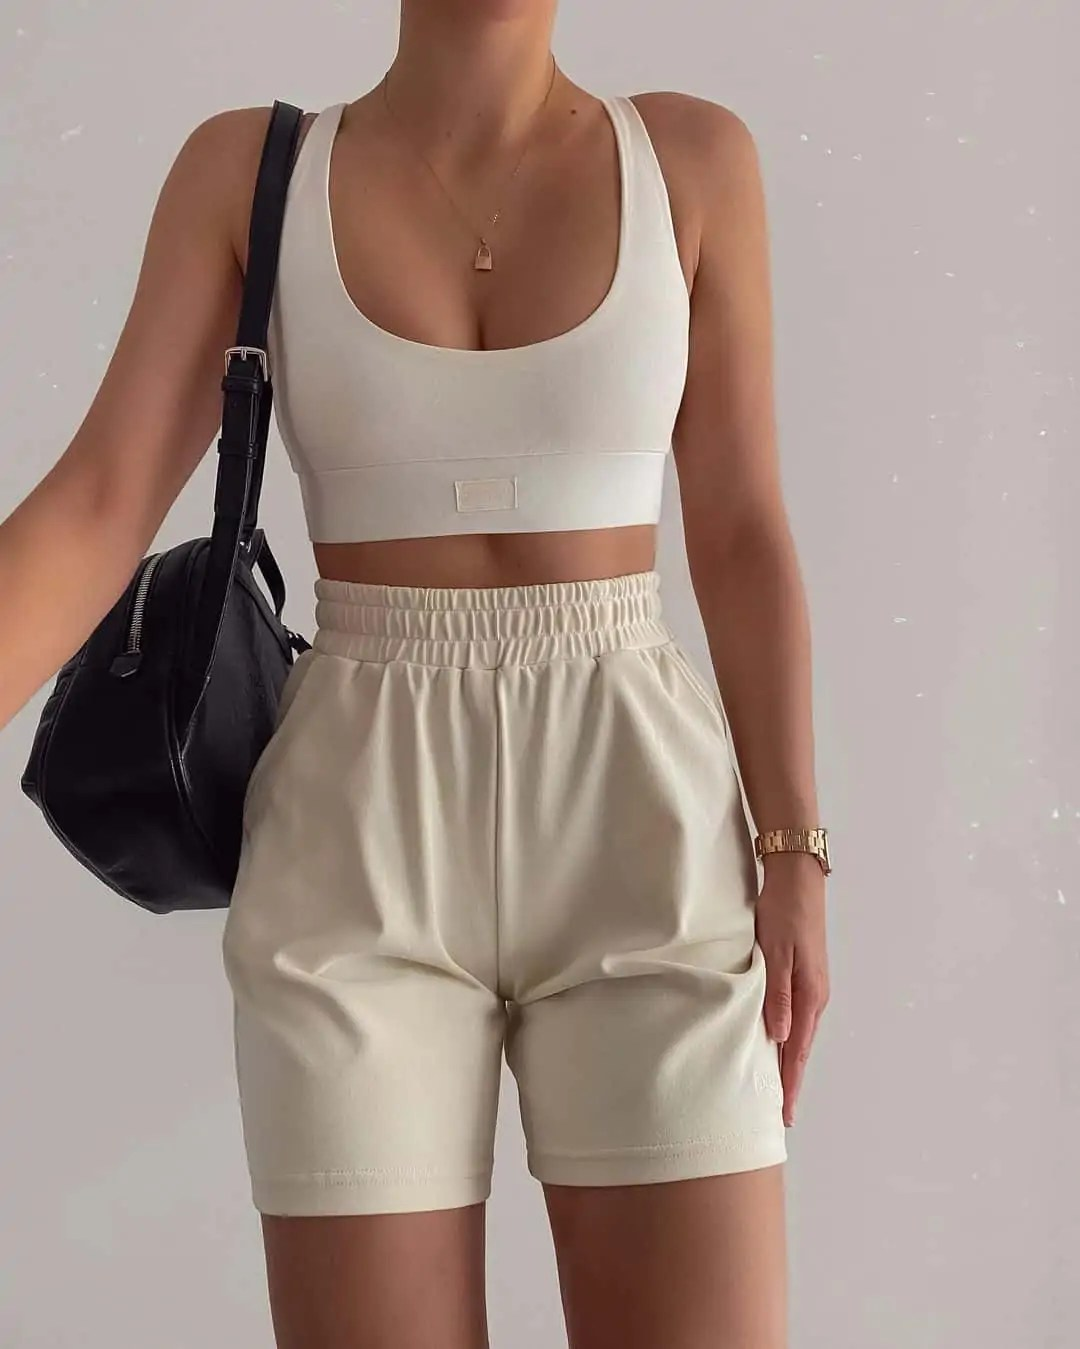 100+ Outfits to Inspire your next shopping haul 137